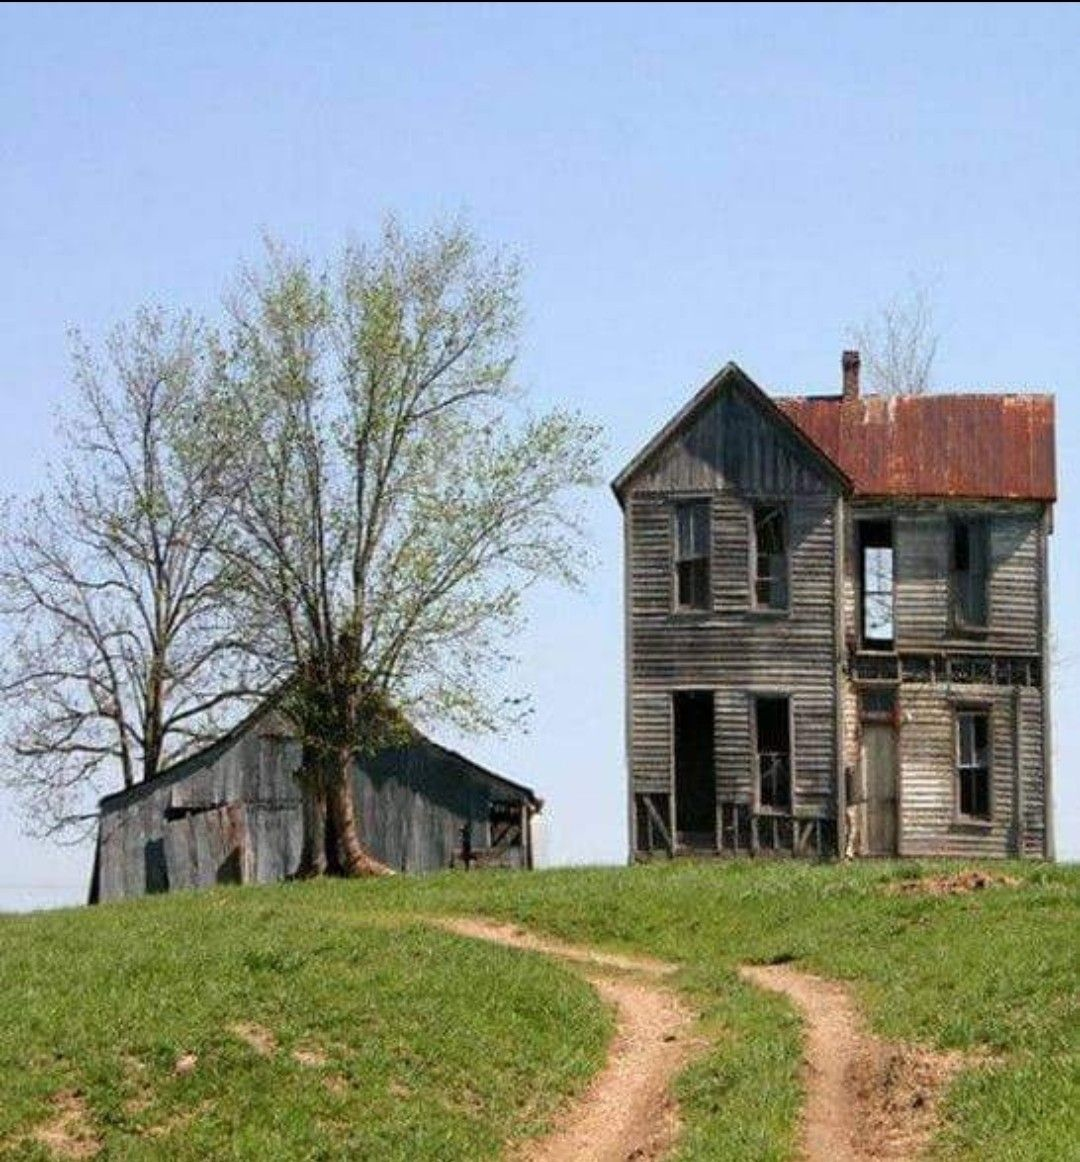 Pin By Margie Forrest On OLD & ABANDONED In 2020